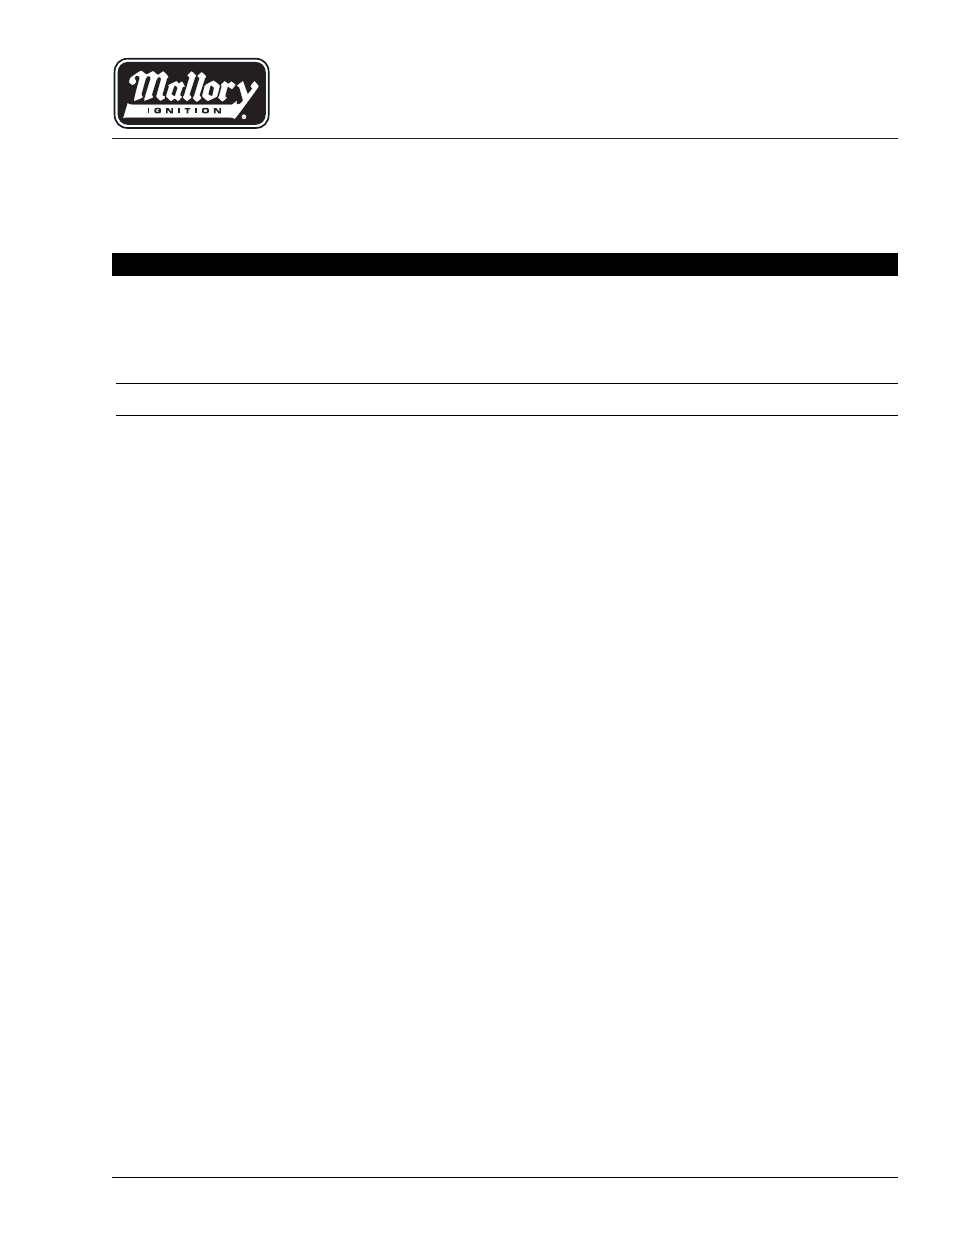 Mallory Ignition Unilite Distributor User Manual 13 Pages Ford Wiring Schematic Also For 605